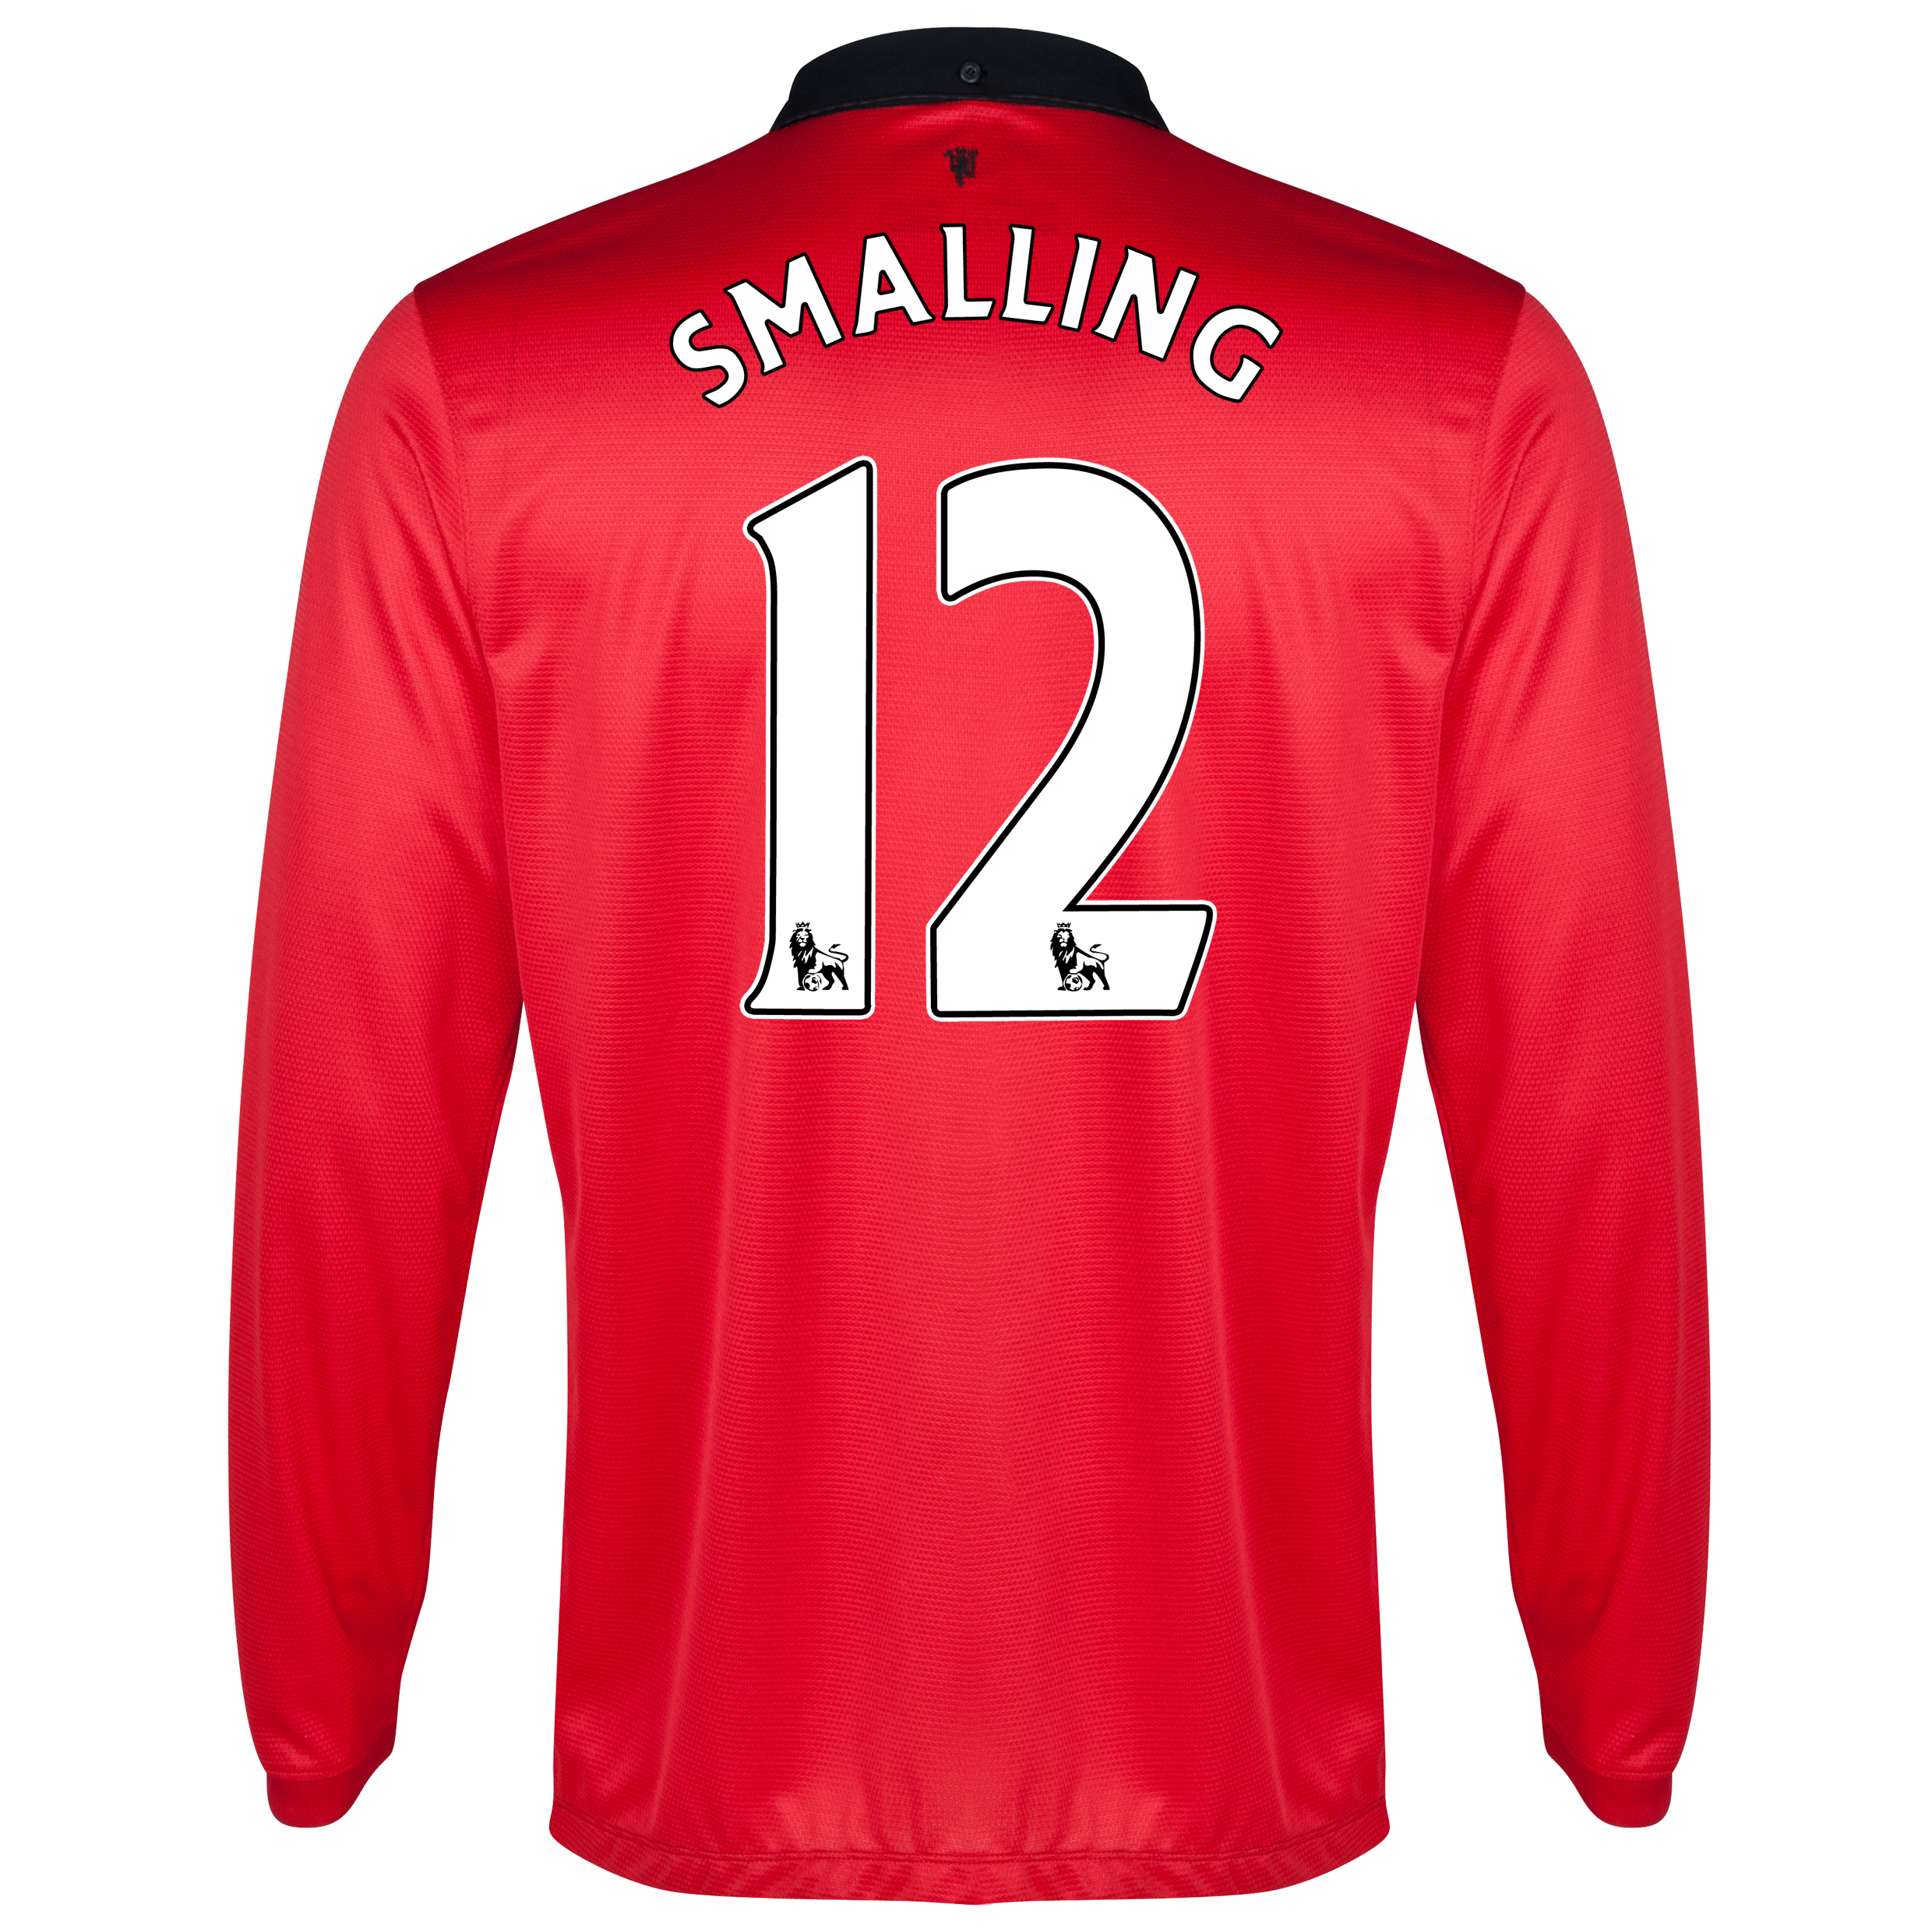 Manchester United Home Shirt 2013/14 - Long Sleeved with Smalling 12 printing